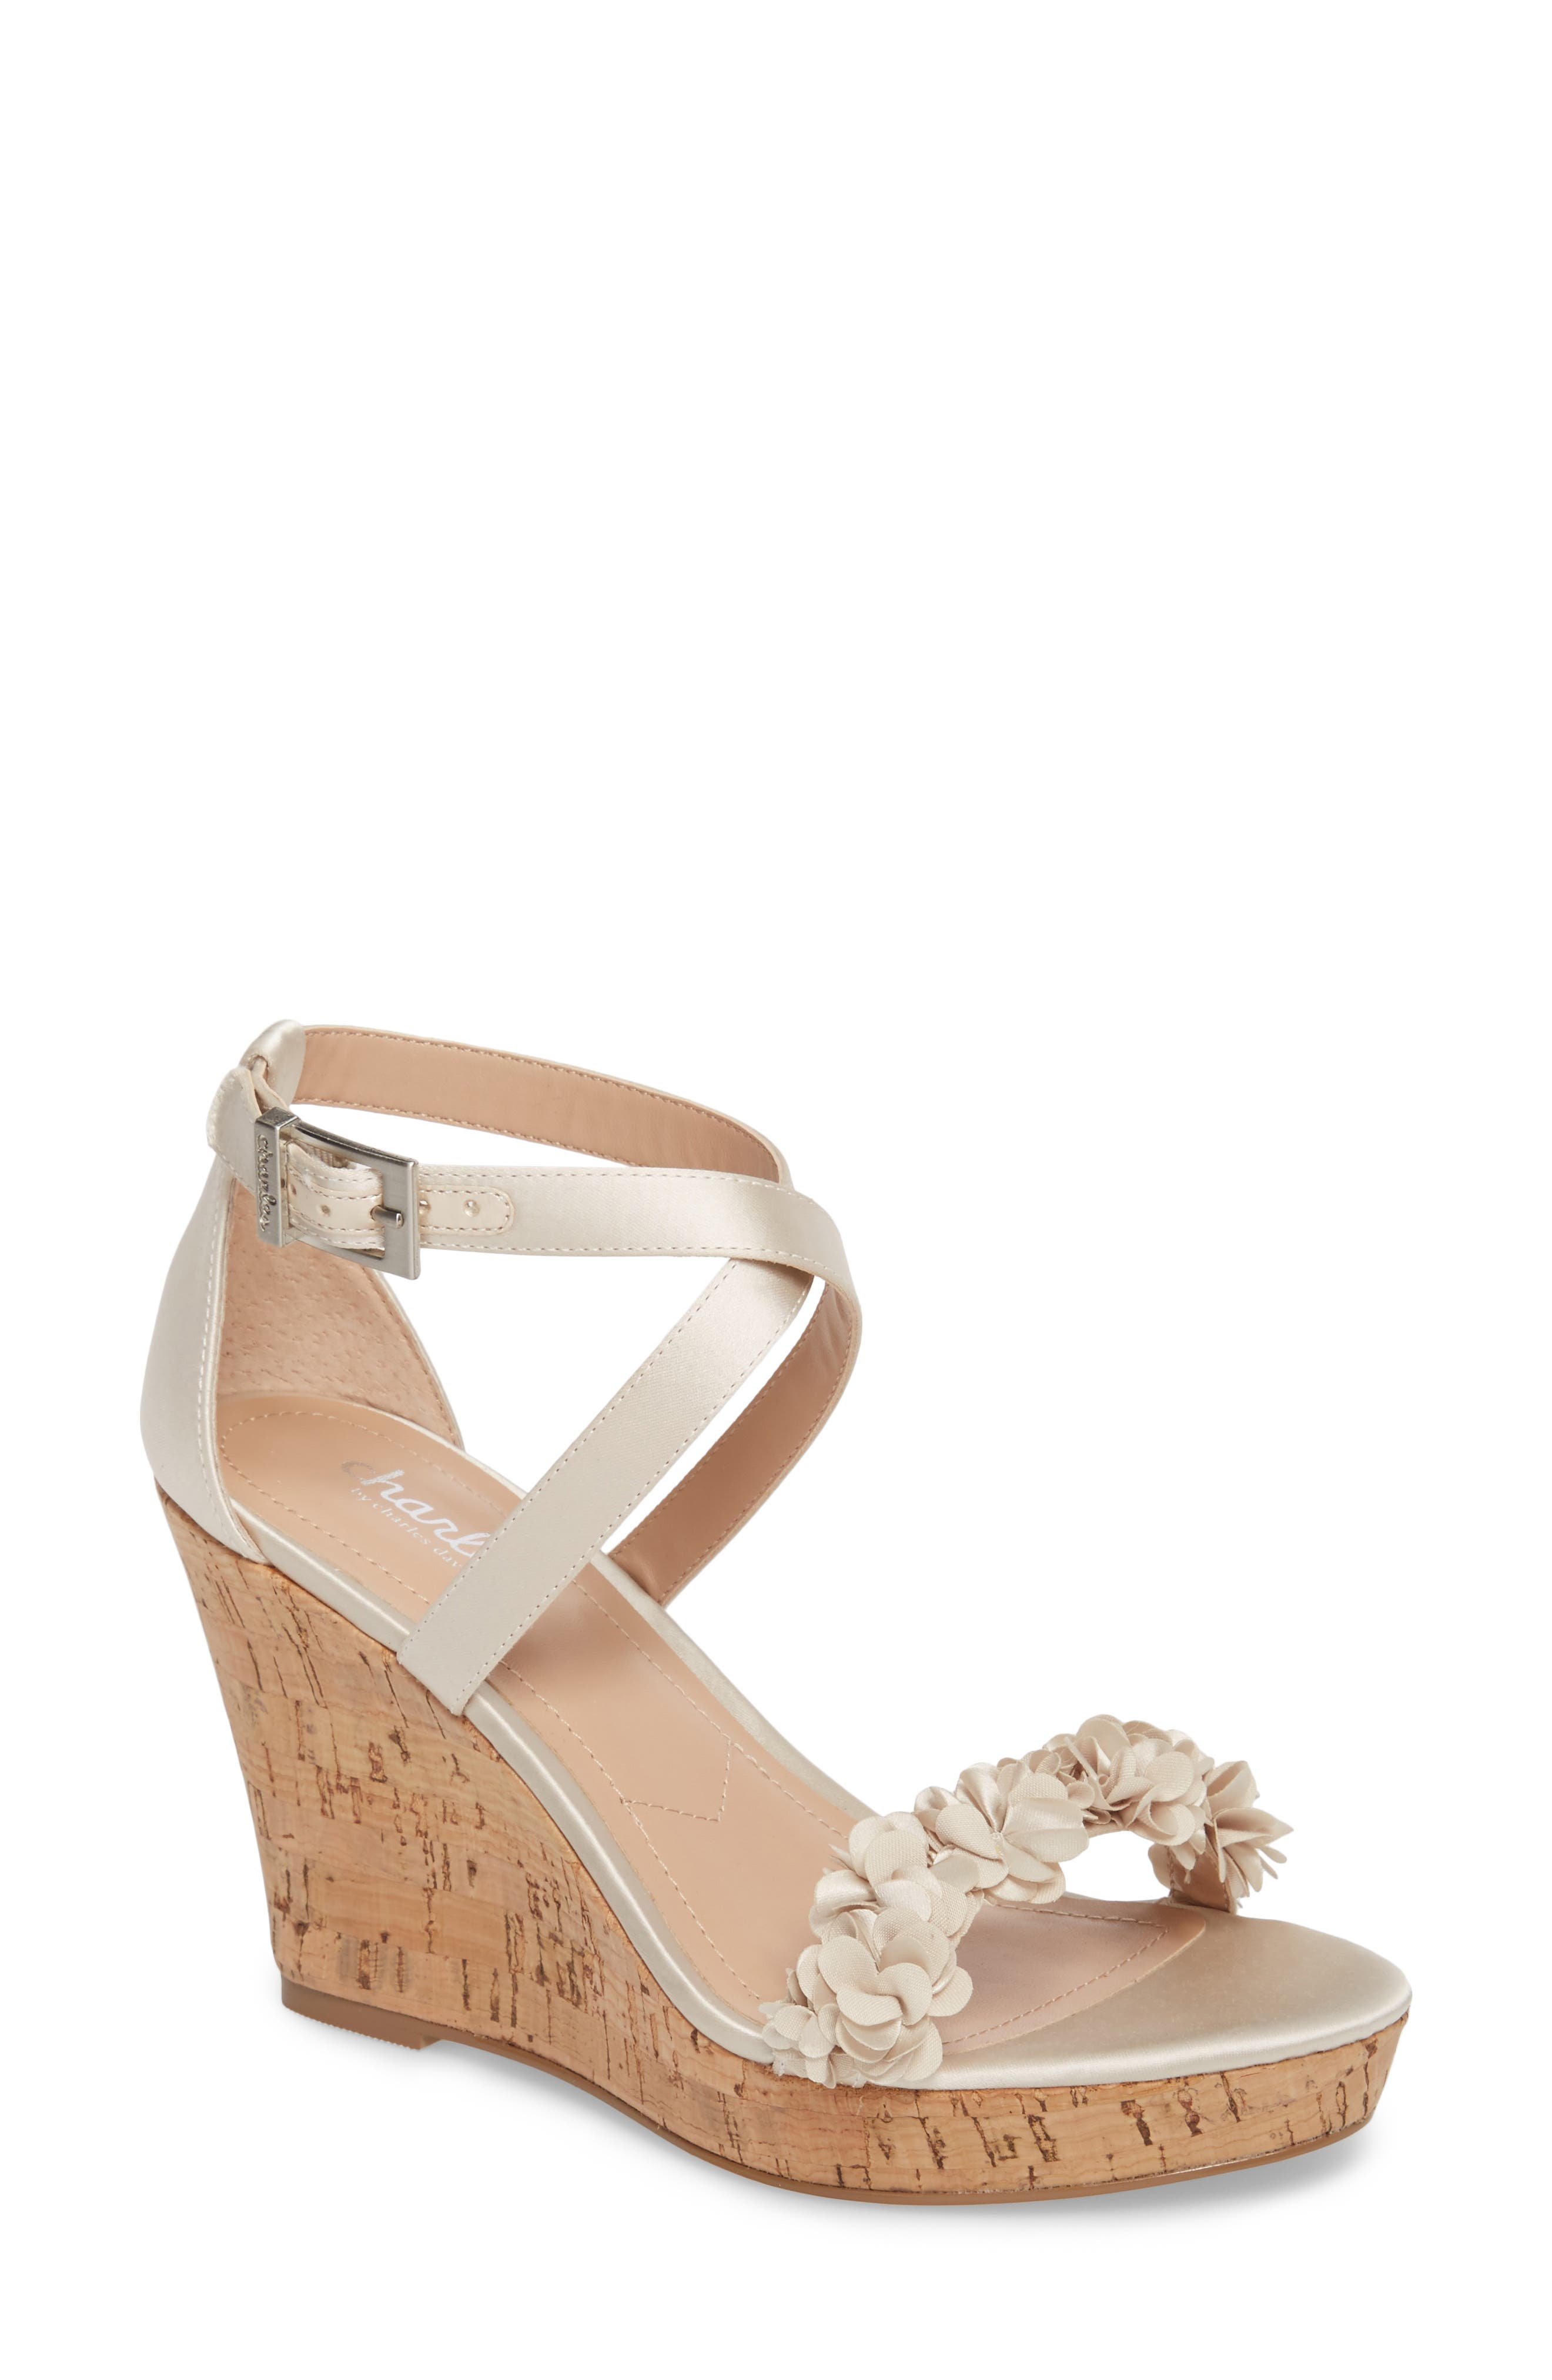 Lauryn Wedge Sandal,                             Main thumbnail 1, color,                             Ivory Satin